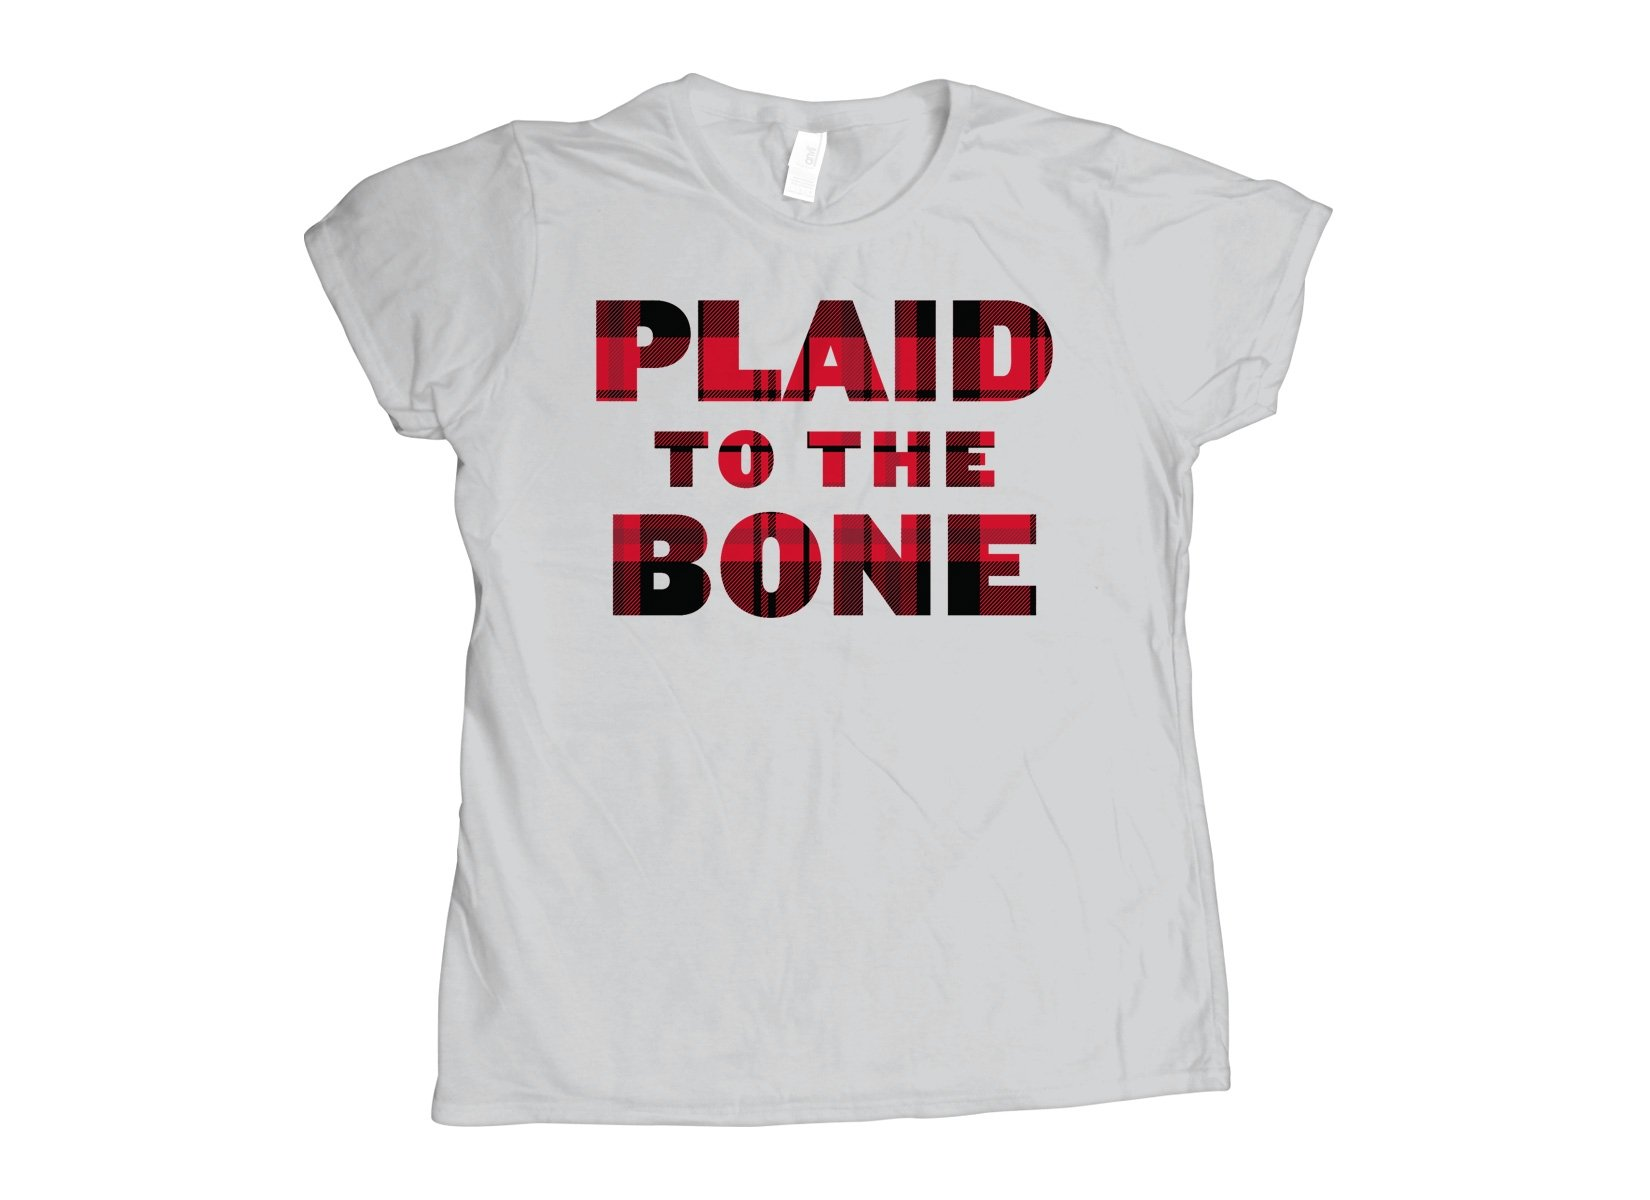 Plaid To The Bone on Womens T-Shirt